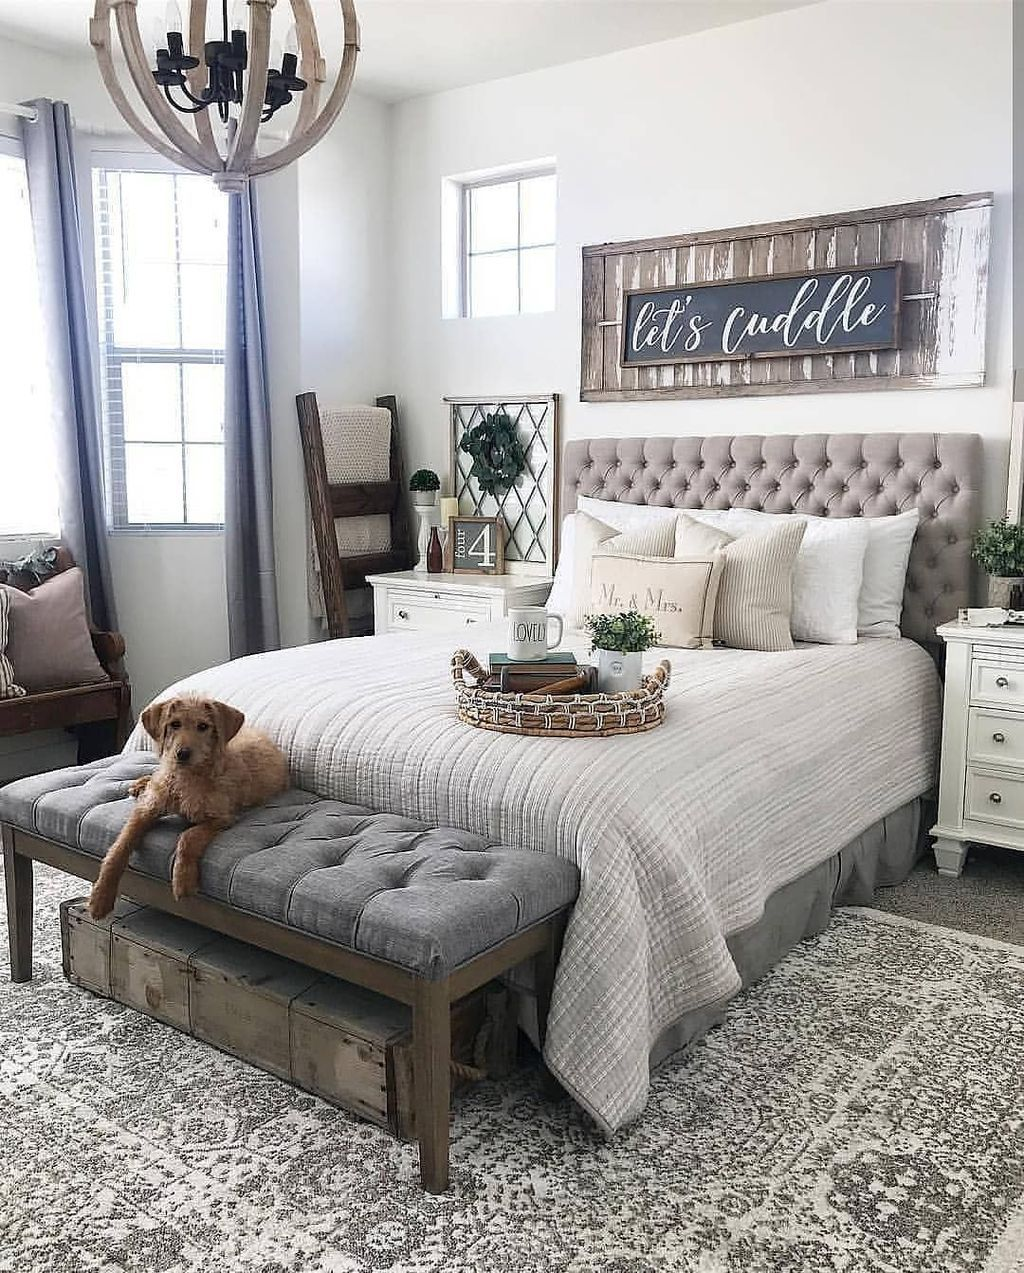 38 Fabulous Modern Farmhouse Bedroom Decorating Ideas Rustic Master Bedroom Master Bedrooms Decor Remodel Bedroom